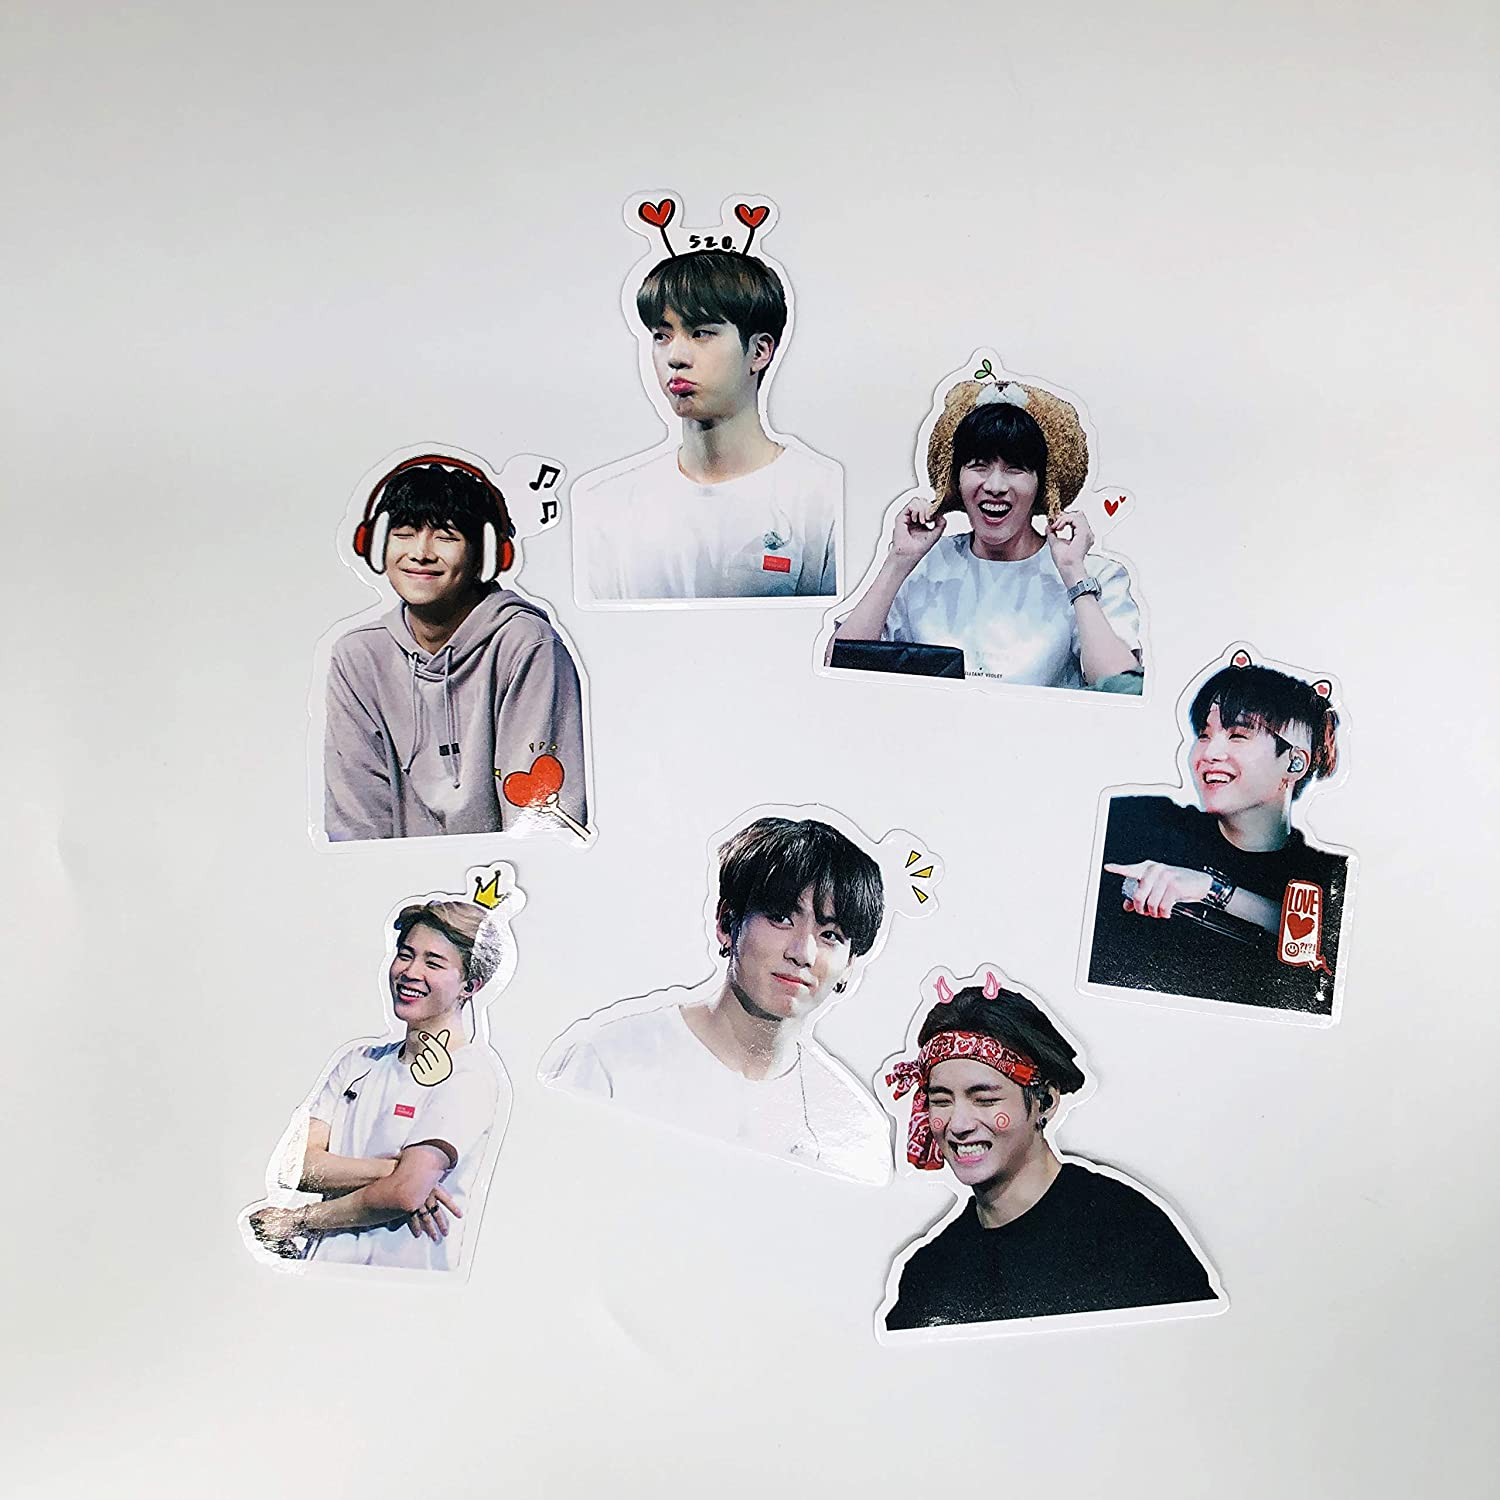 BTS-14PCS kpop BTS Stickers Luggage Case Skateboard Guitar Laptop Cell Phone Travel Door Car Bike Bicycle Stickers